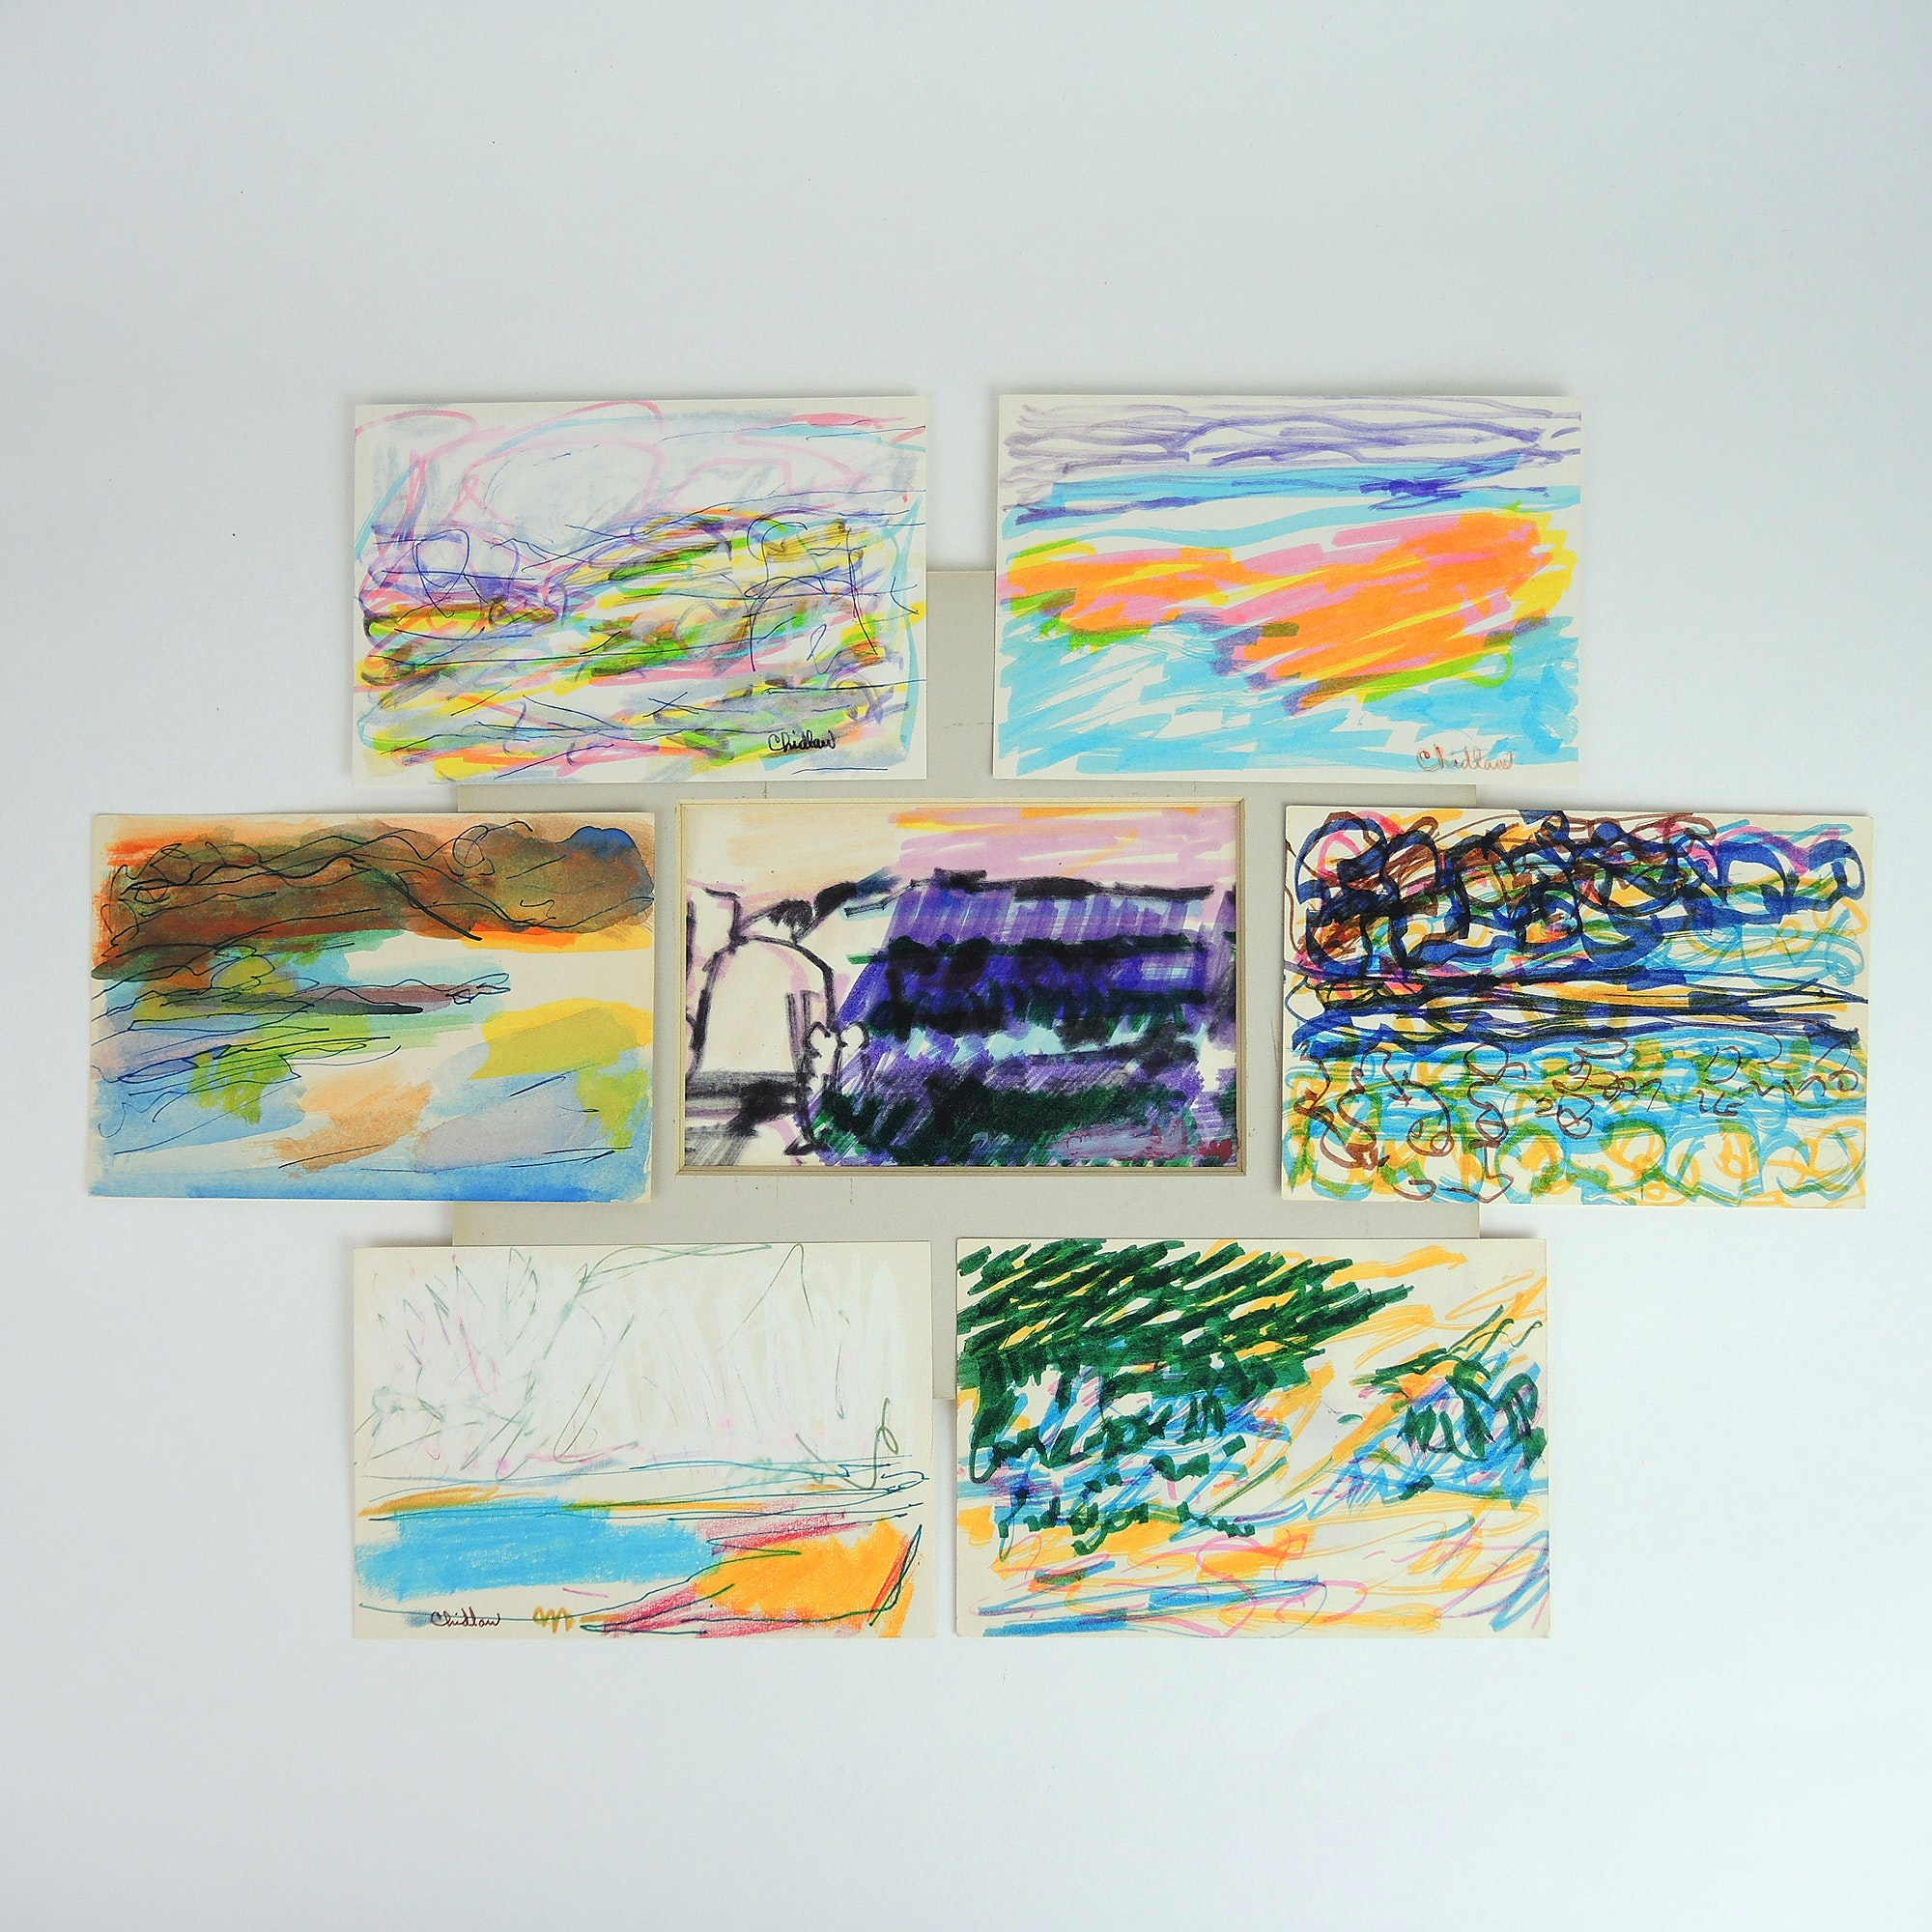 Paul Chidlaw Mixed Media Paintings on Paper Collection of Abstract Expressionism